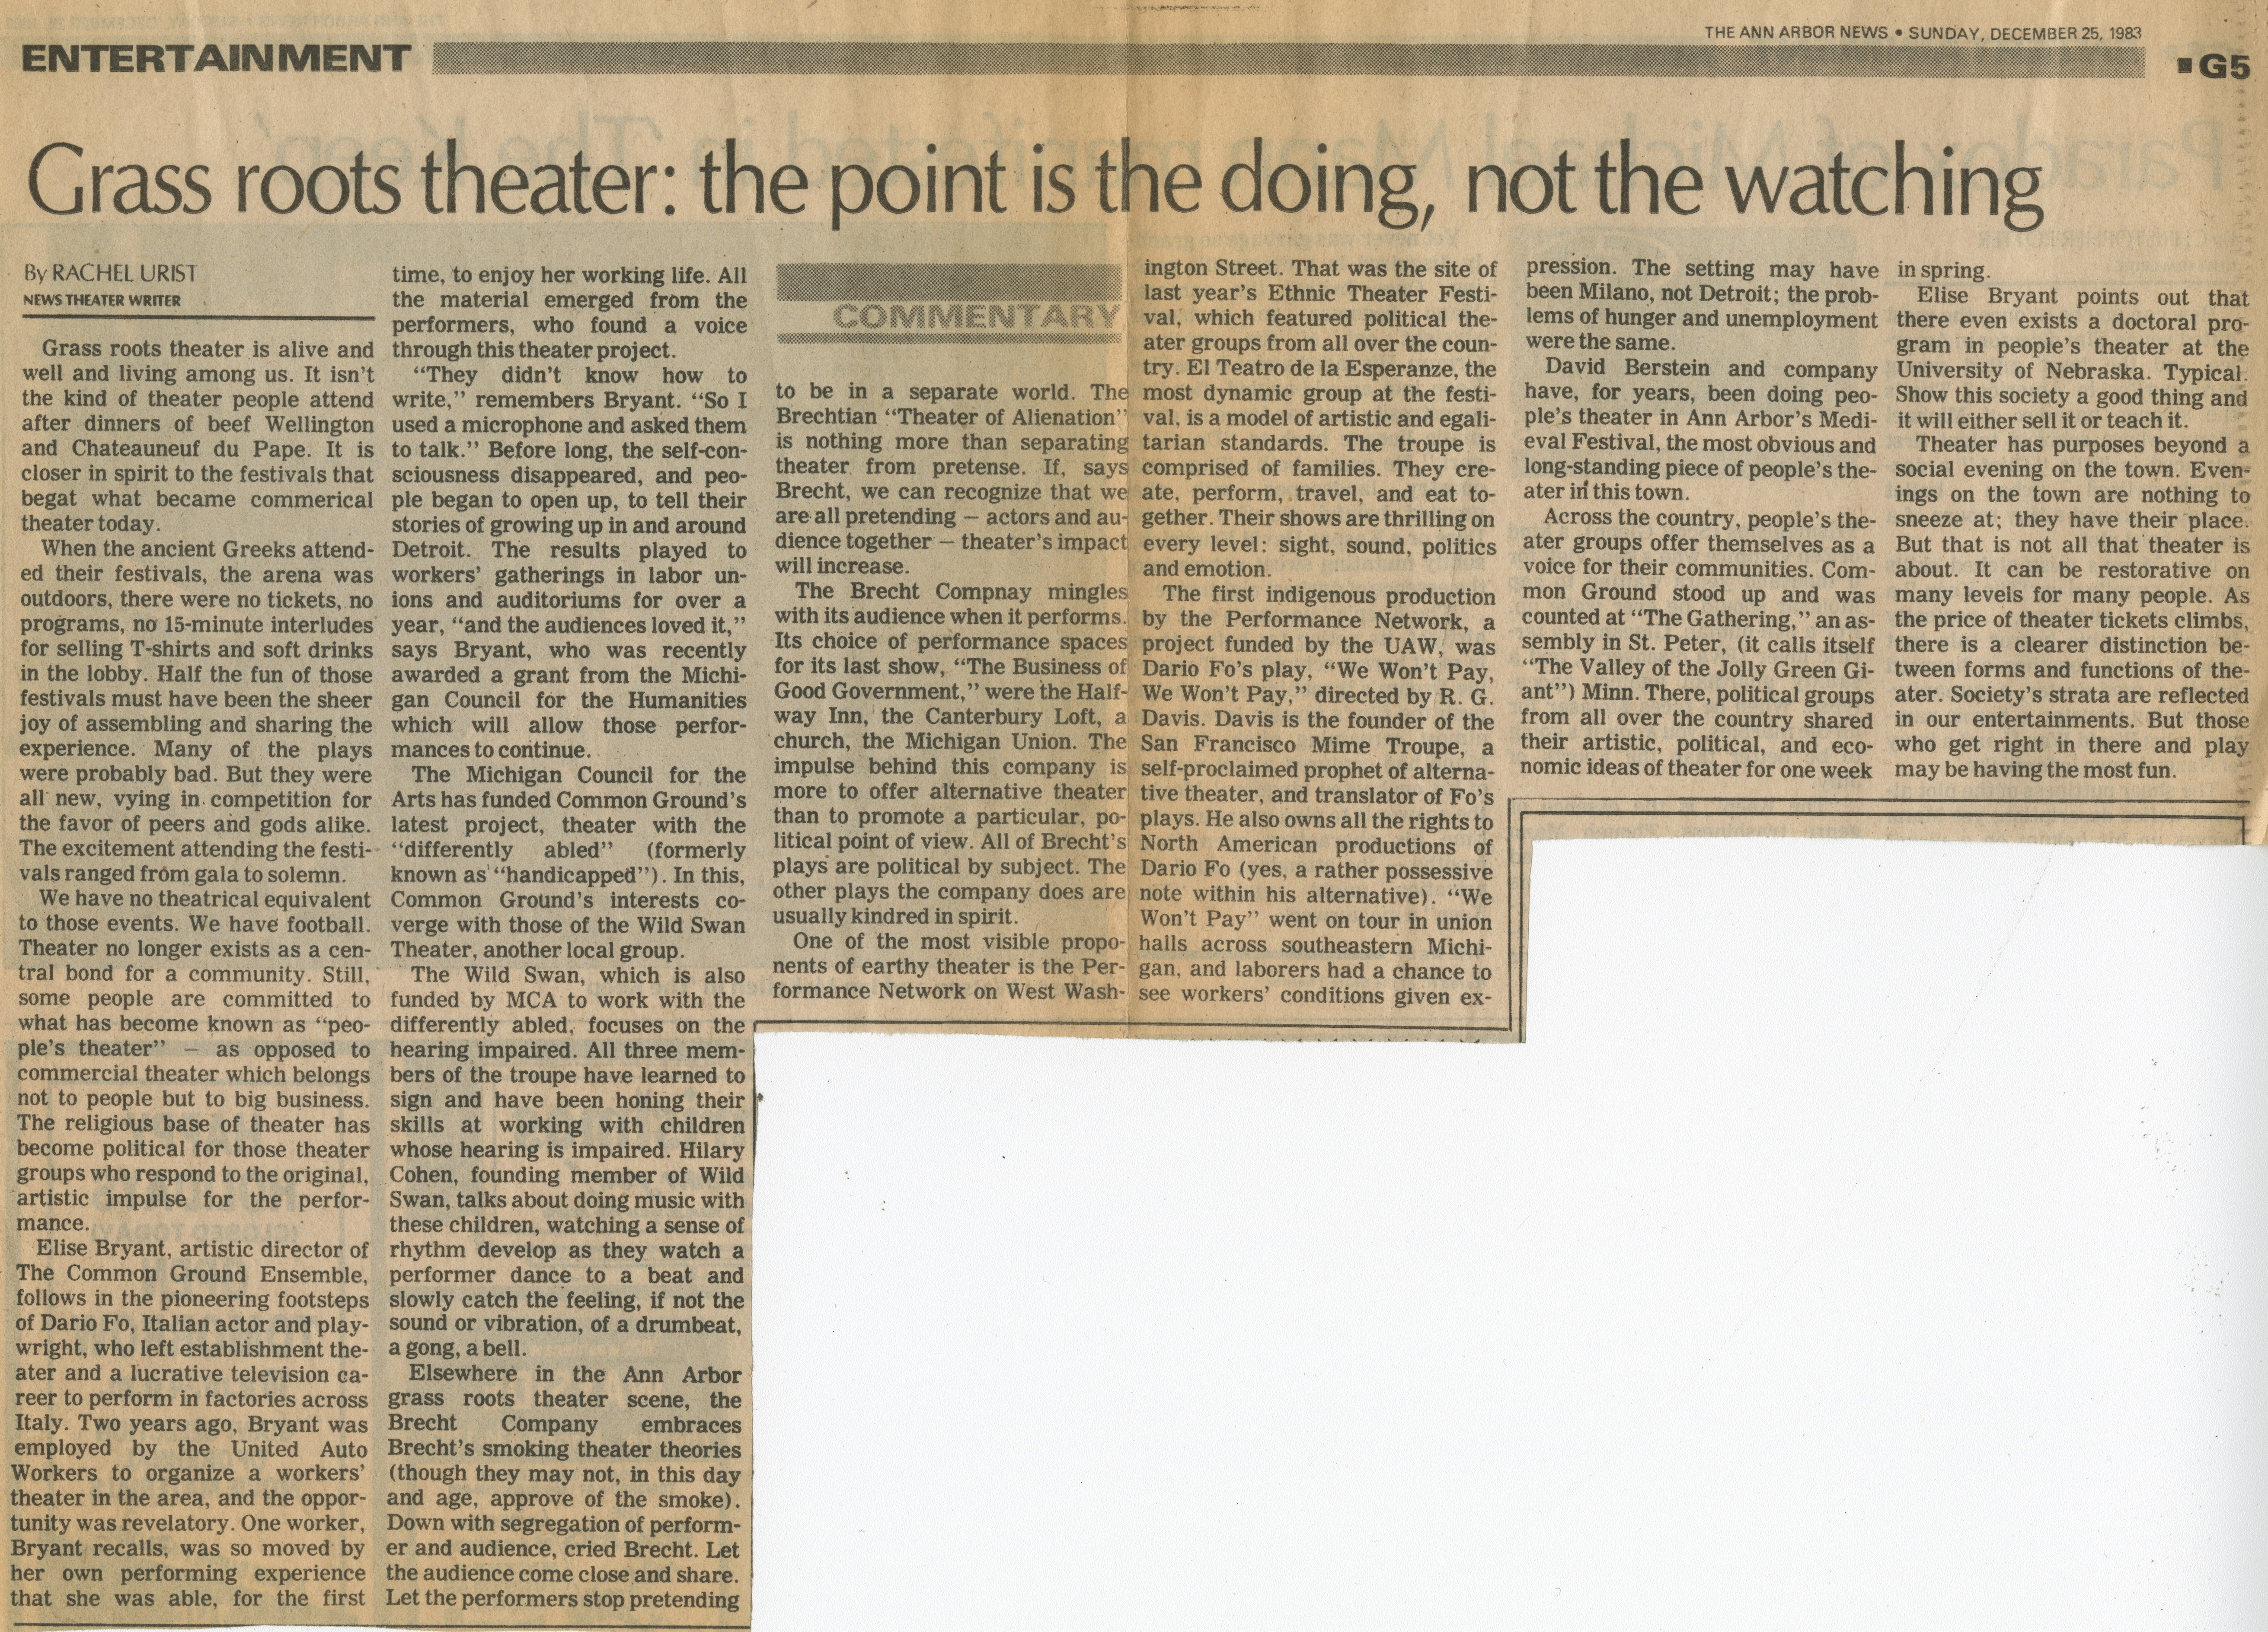 Grass roots theater: the point is the doing, not the watching image